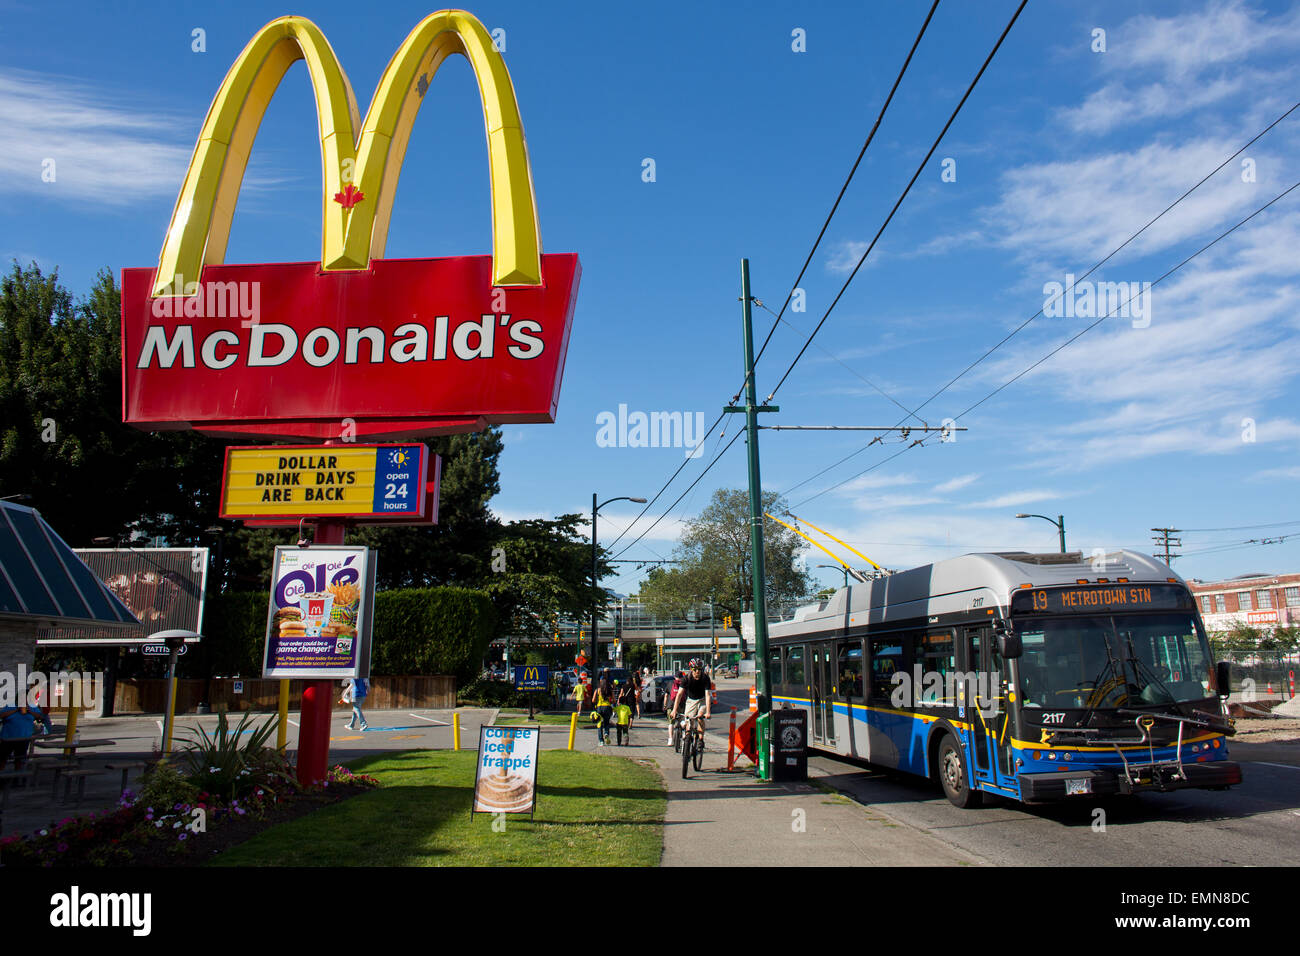 Fastfood In Canada Stock Photos & Fastfood In Canada Stock Images ...